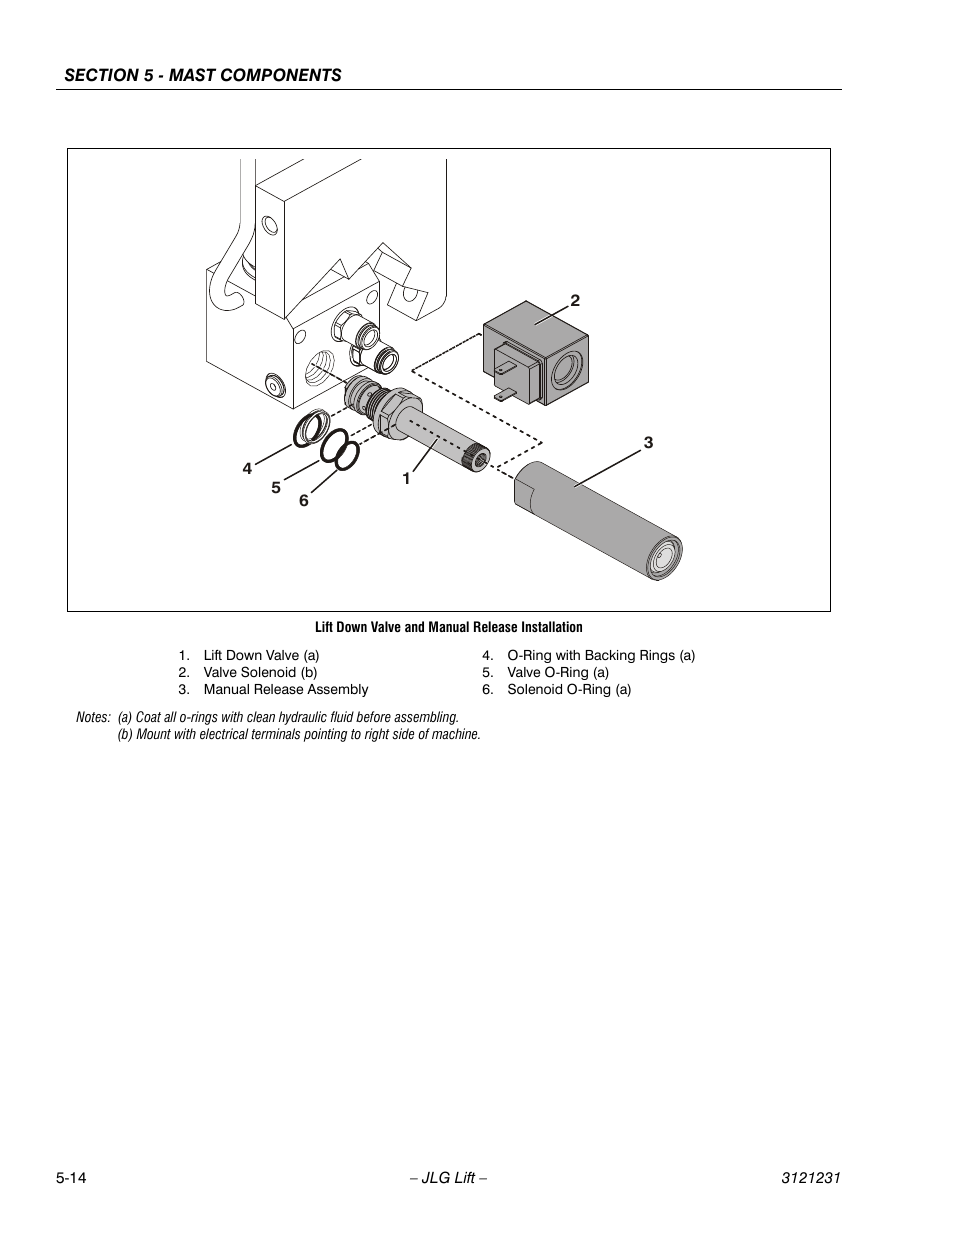 JLG 15/20MSP Service Manual User Manual | Page 104 / 174 | Also for